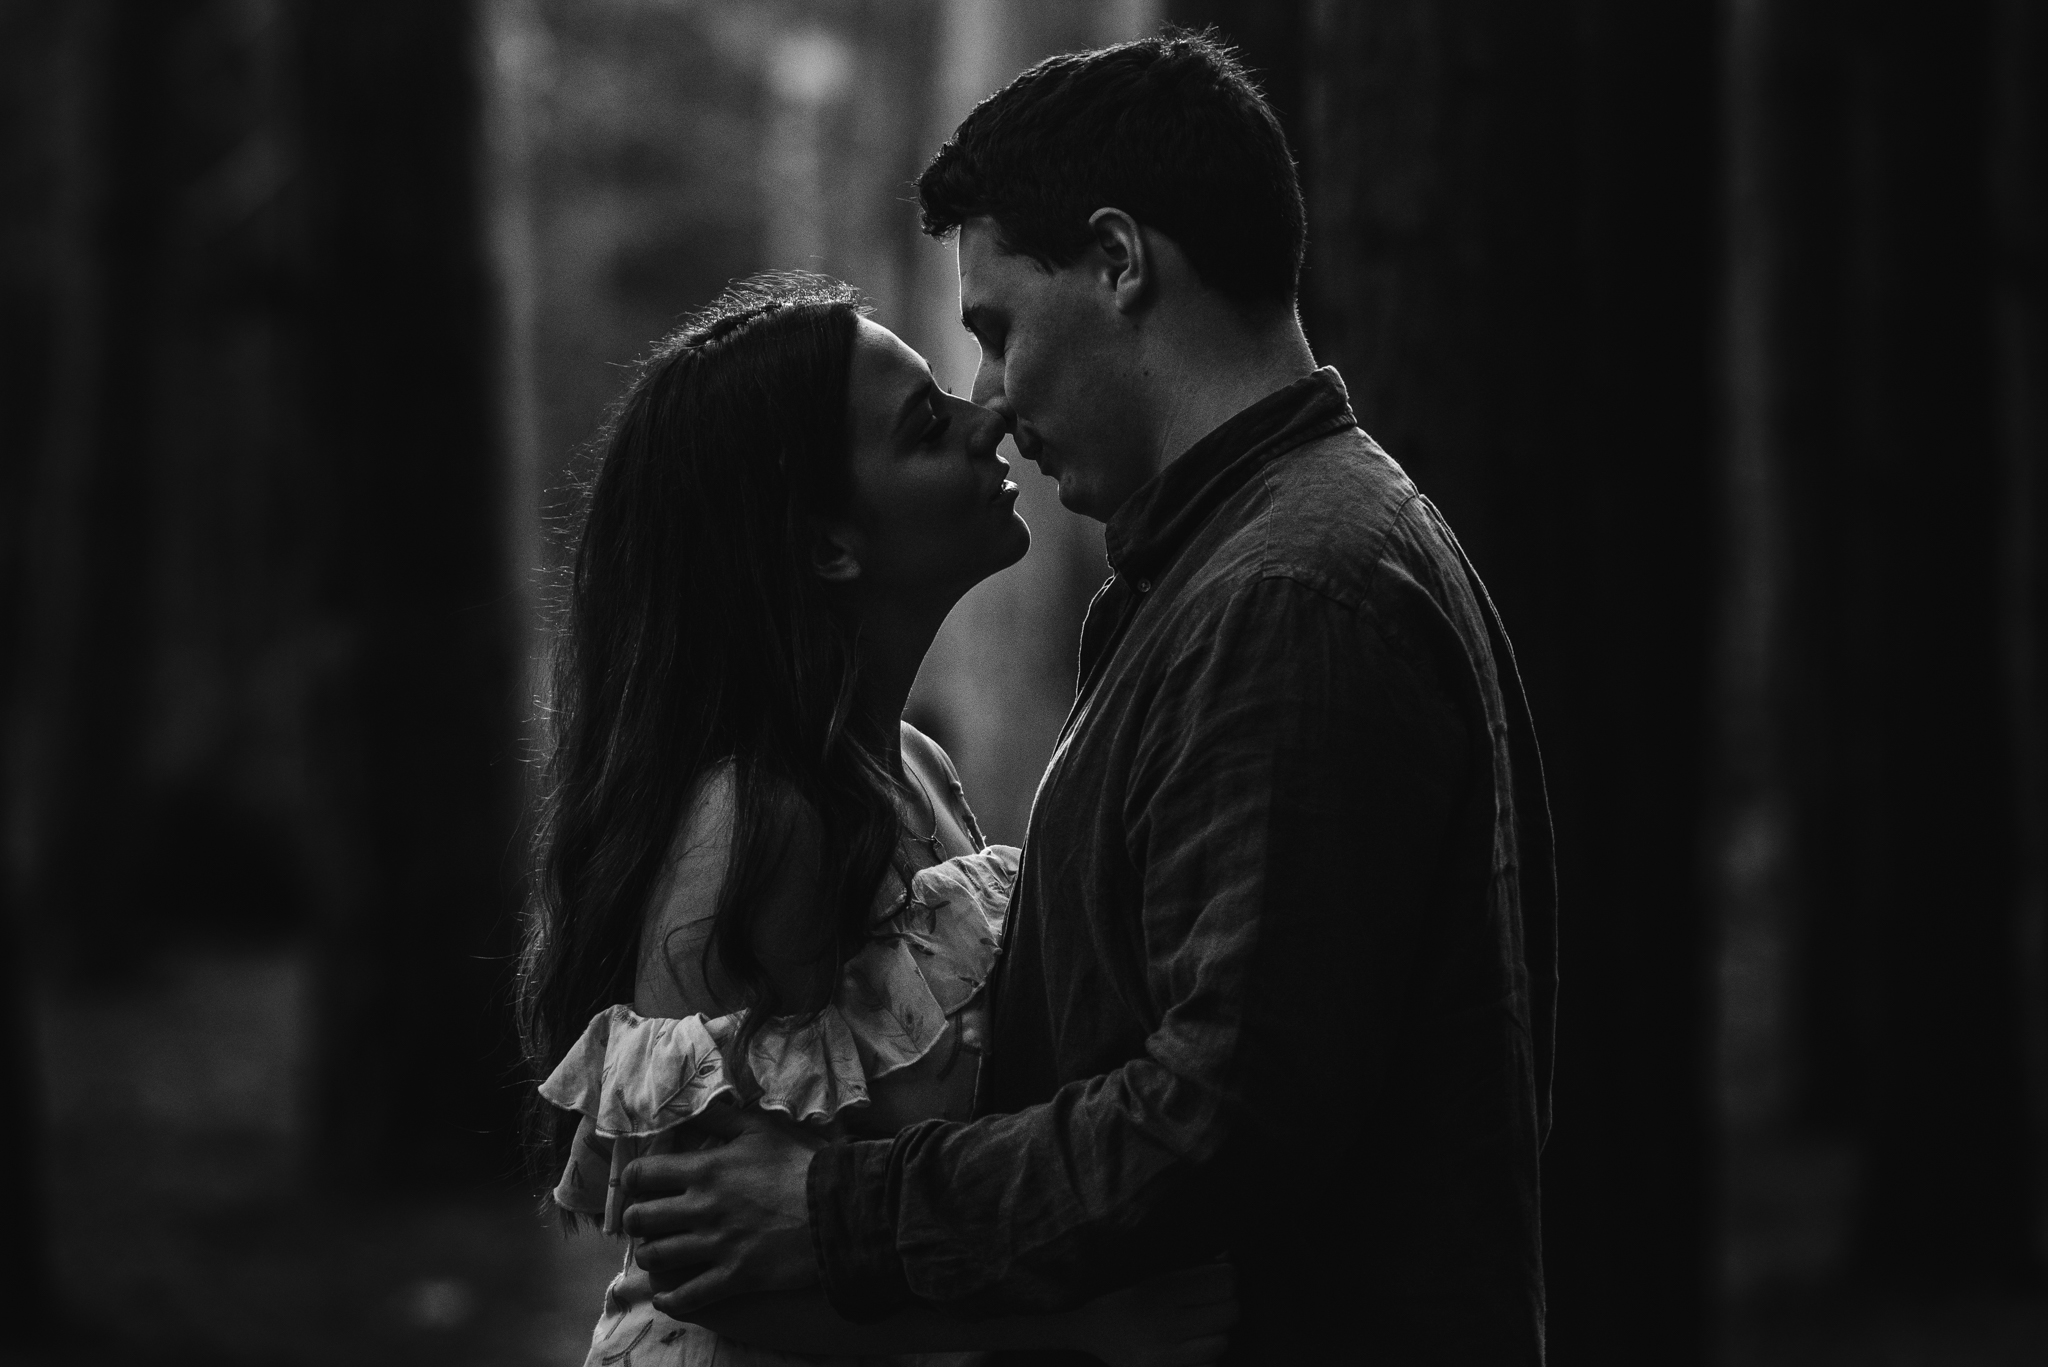 launceston couples photographer-9.jpg